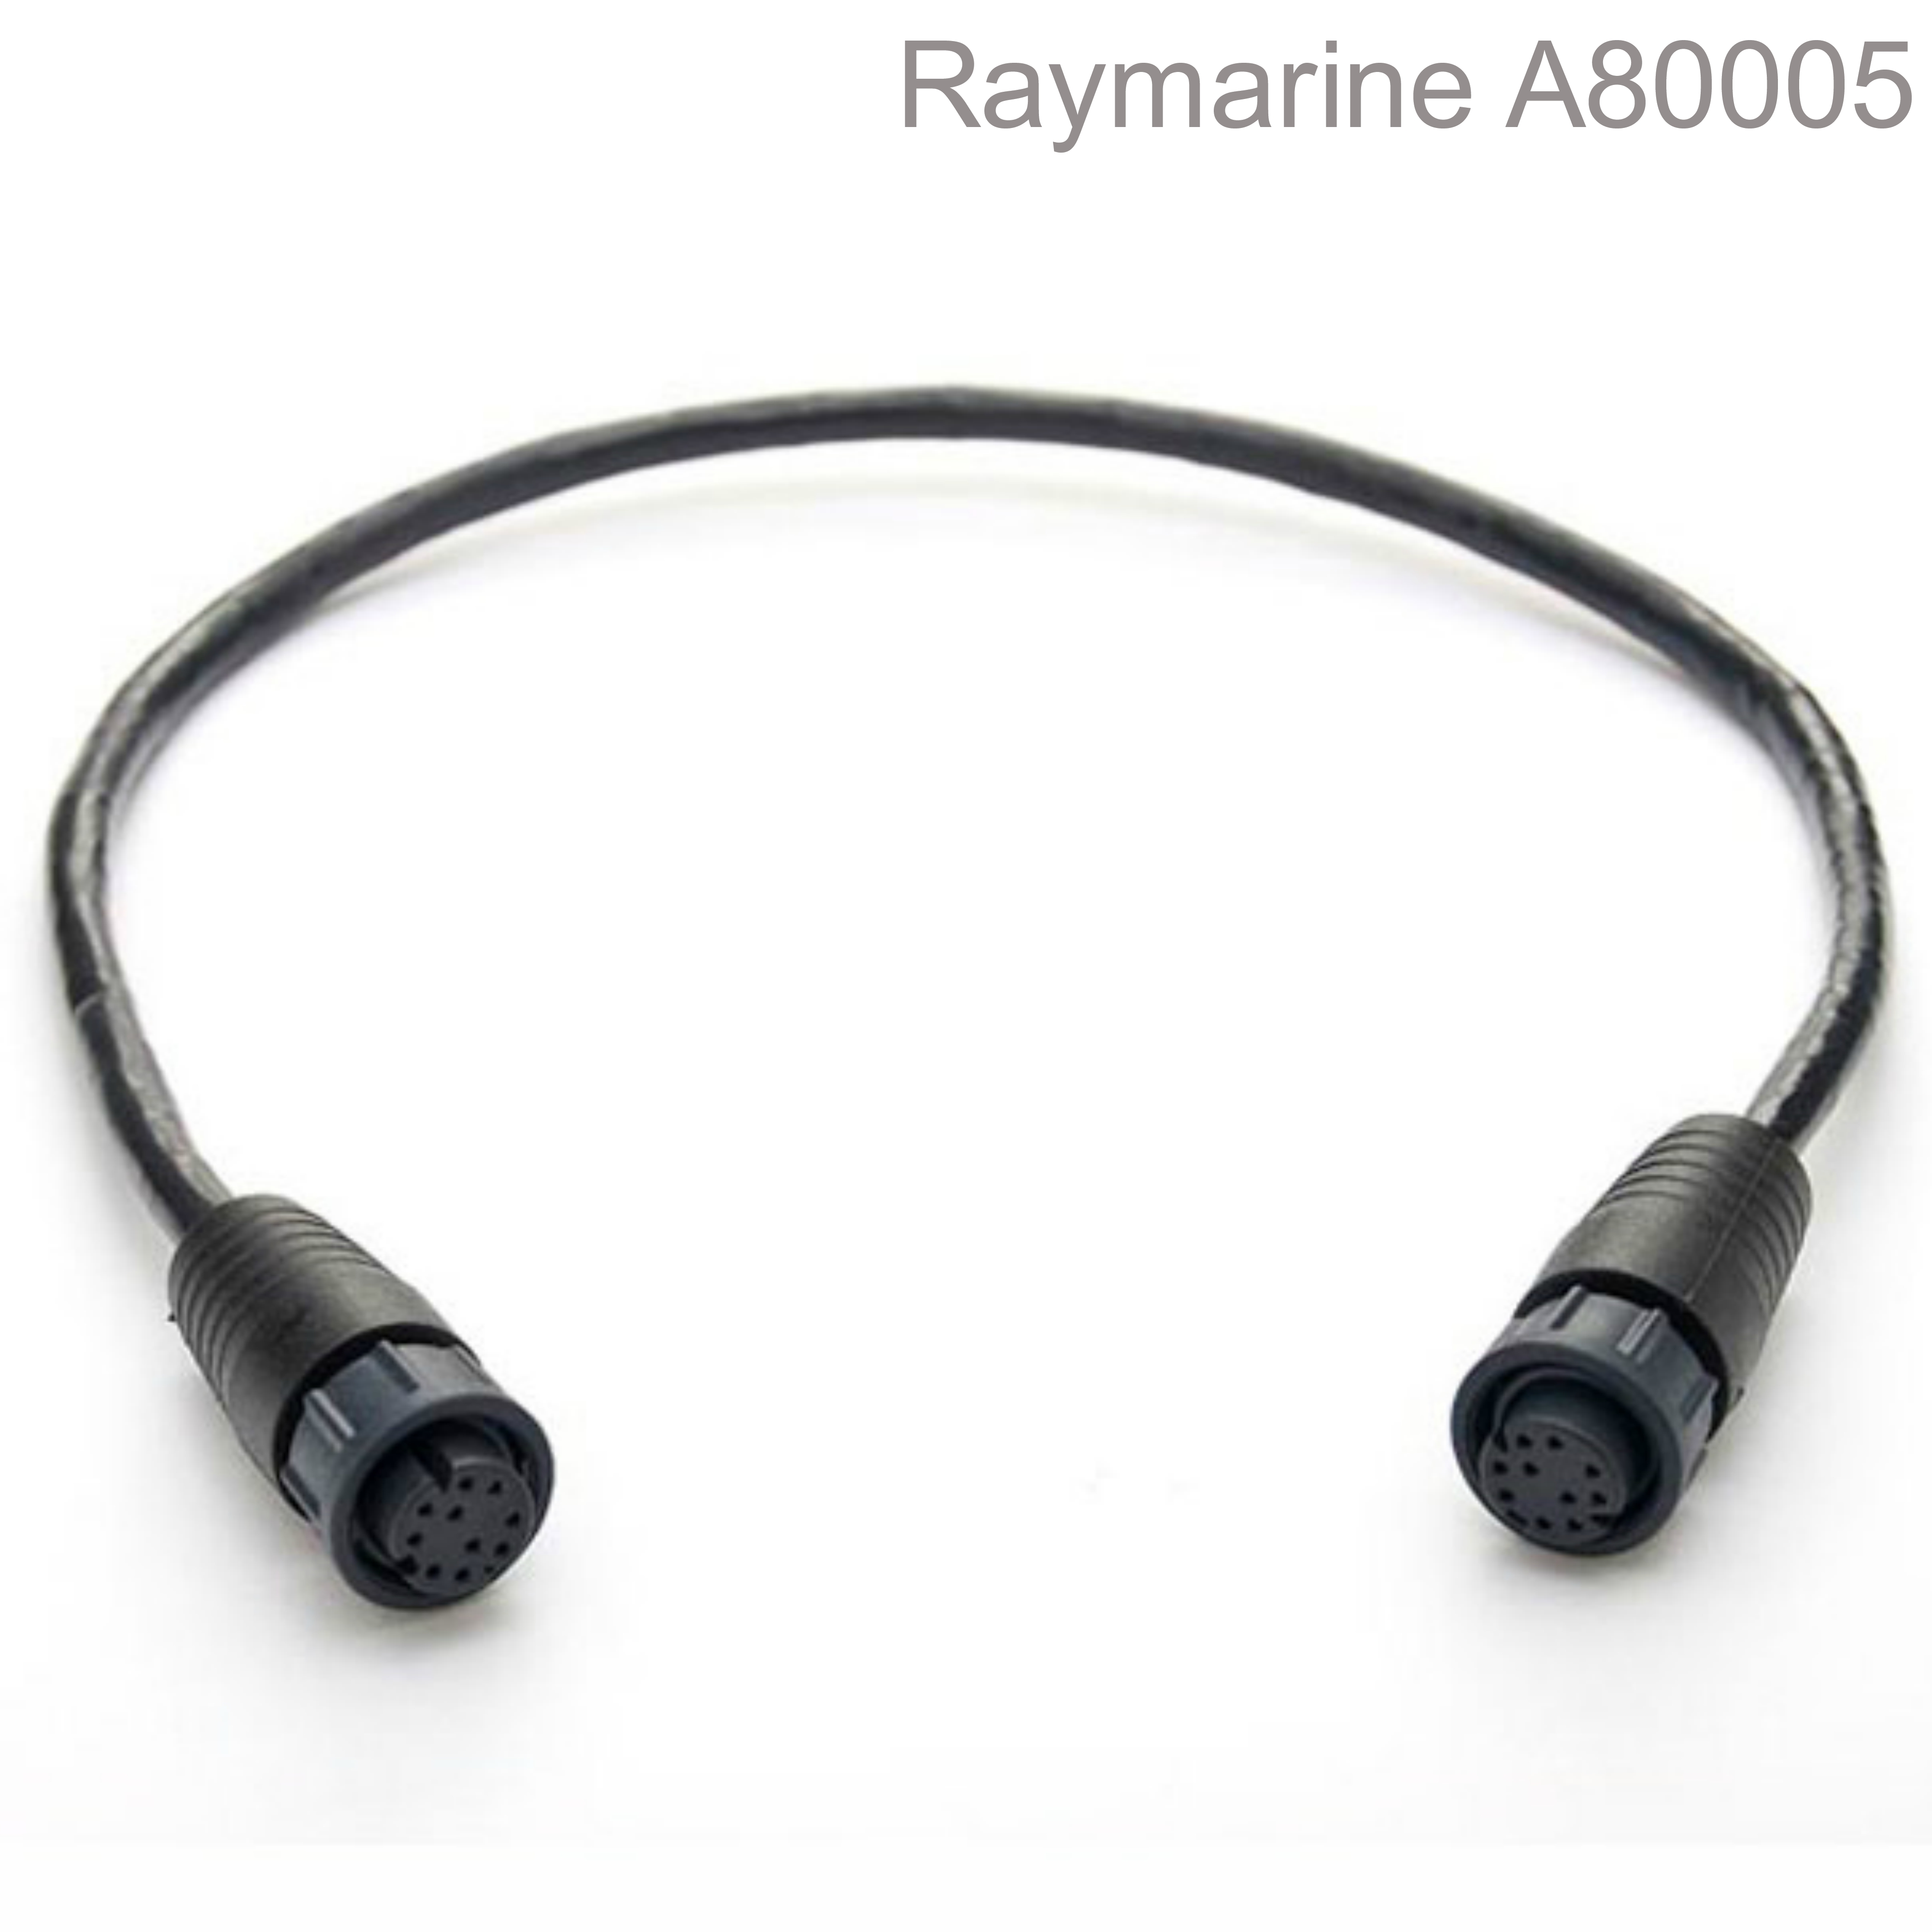 Raymarine-A80005|RayNet to RayNet Cable|5m|Female To Female|For Marine & Boats